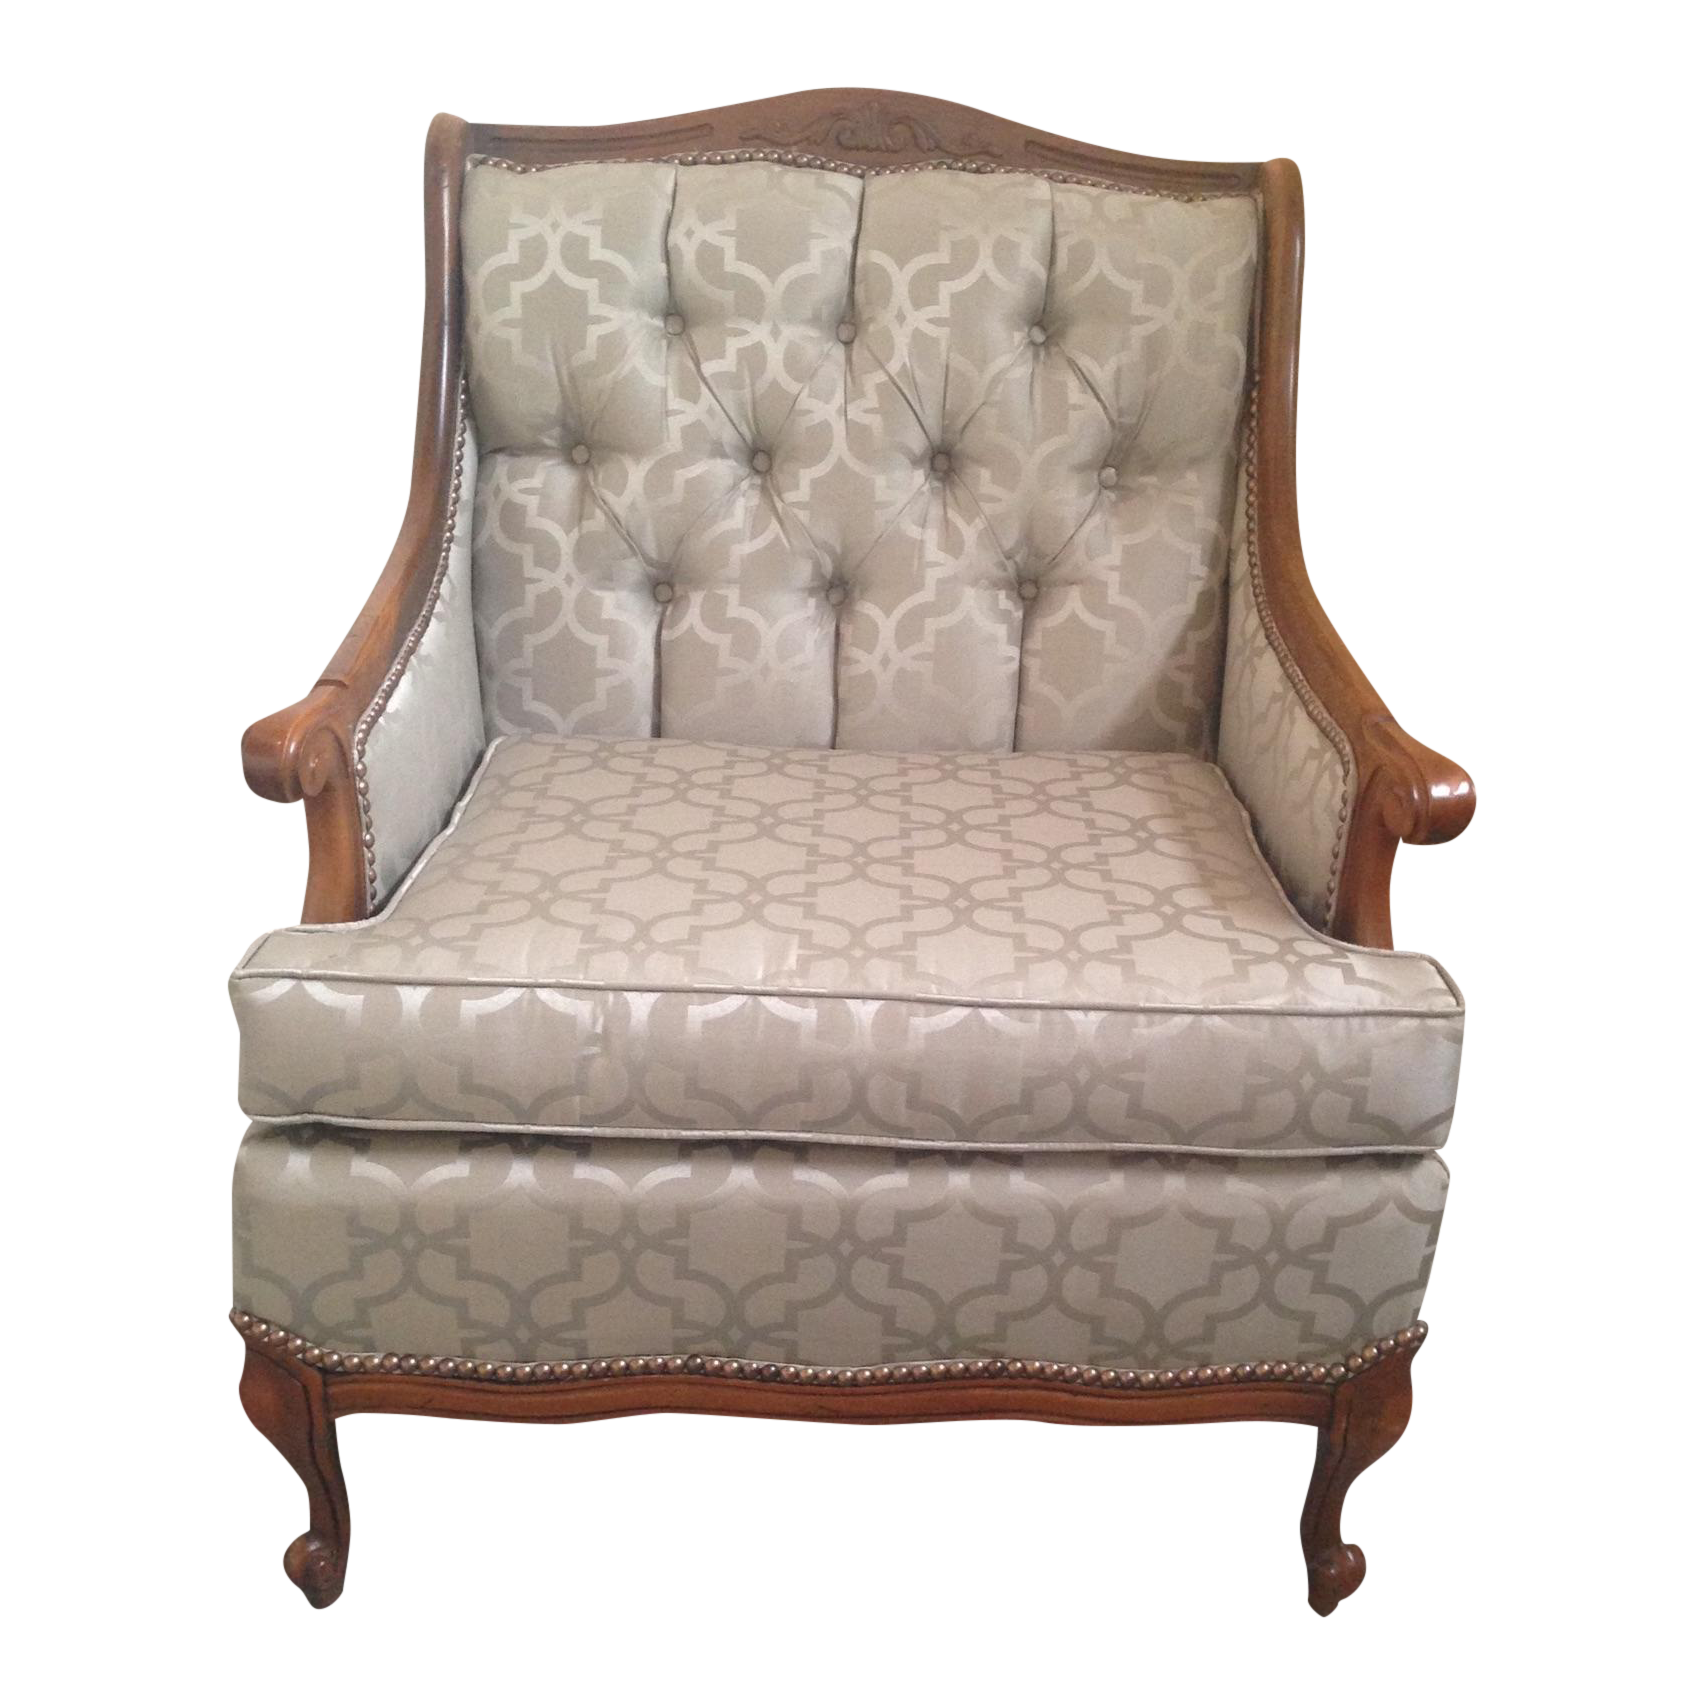 Superb Antique Reupholstered Queen Anne Accent Chair